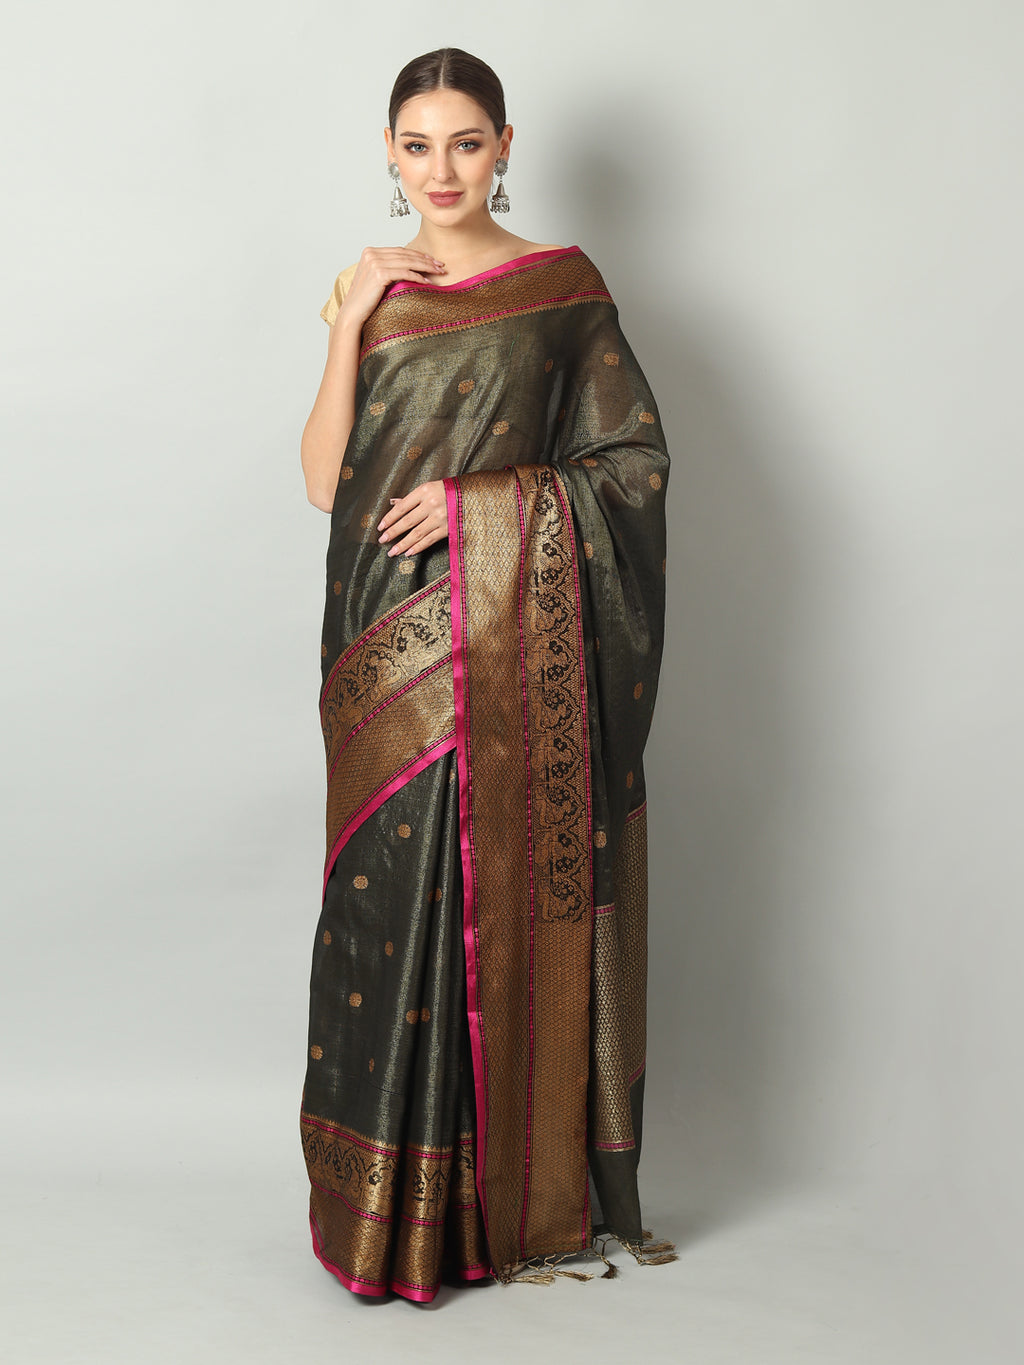 Black shimmer zari linen saree with antique gold zari booties and border